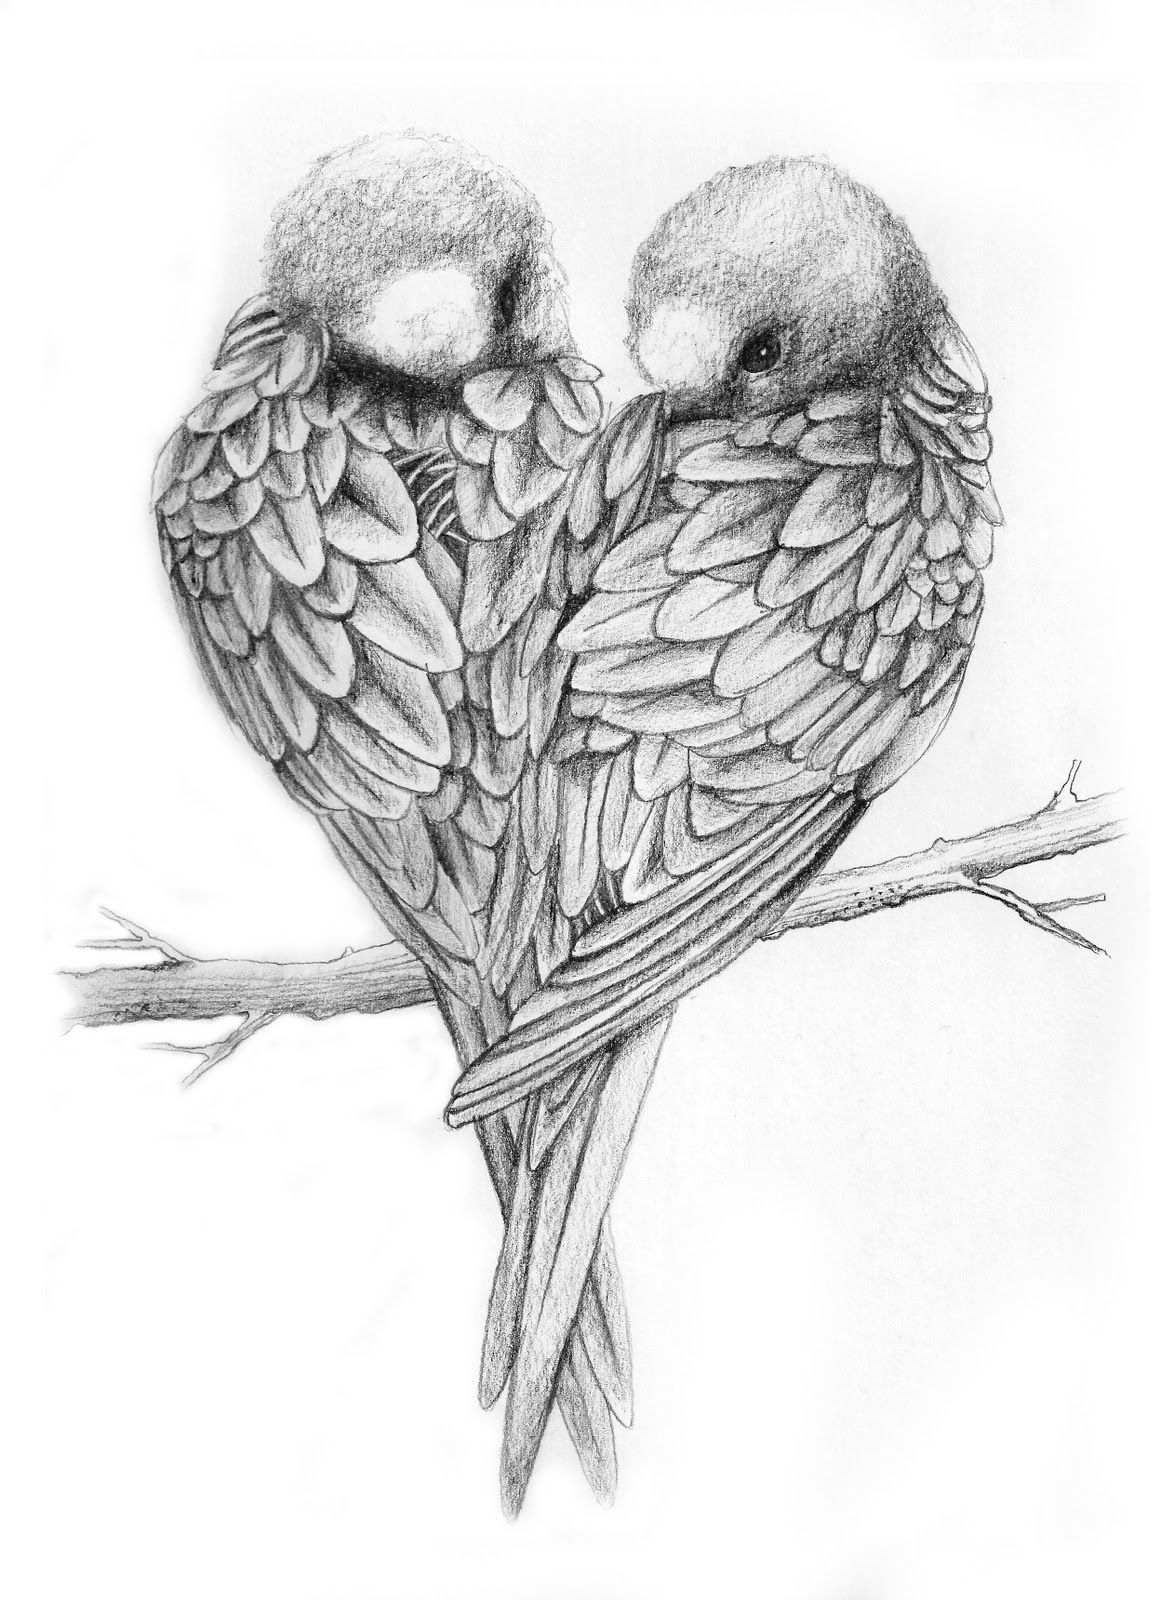 Drawings of love birds love birds drawing love birds ♥